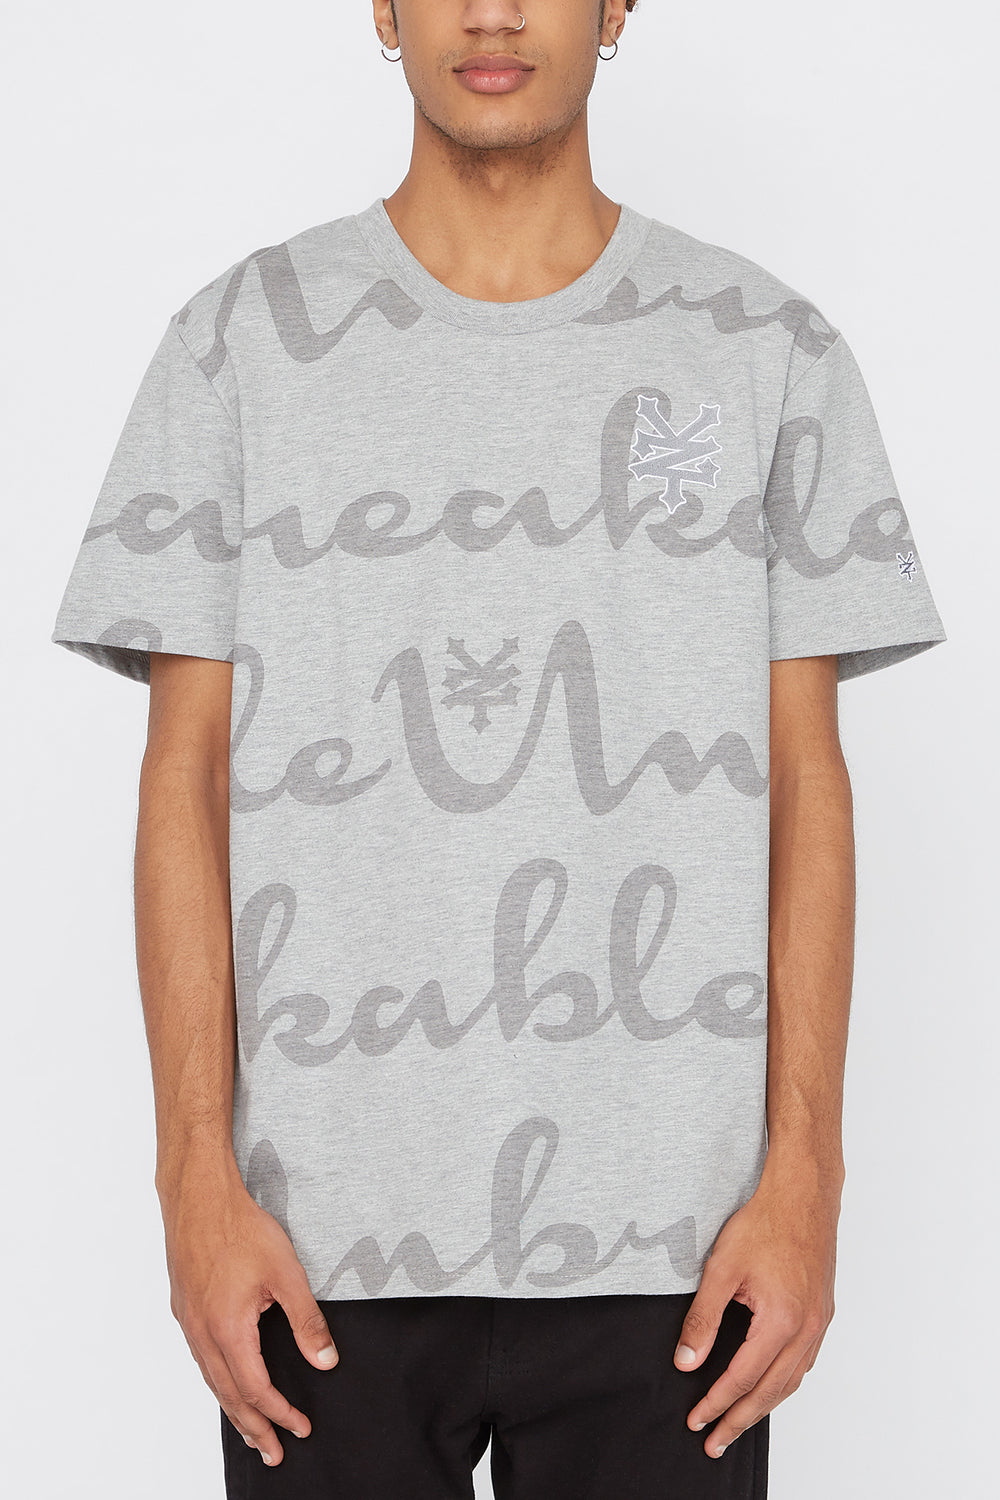 T-Shirt Zoo York Unbreakable Homme Gris